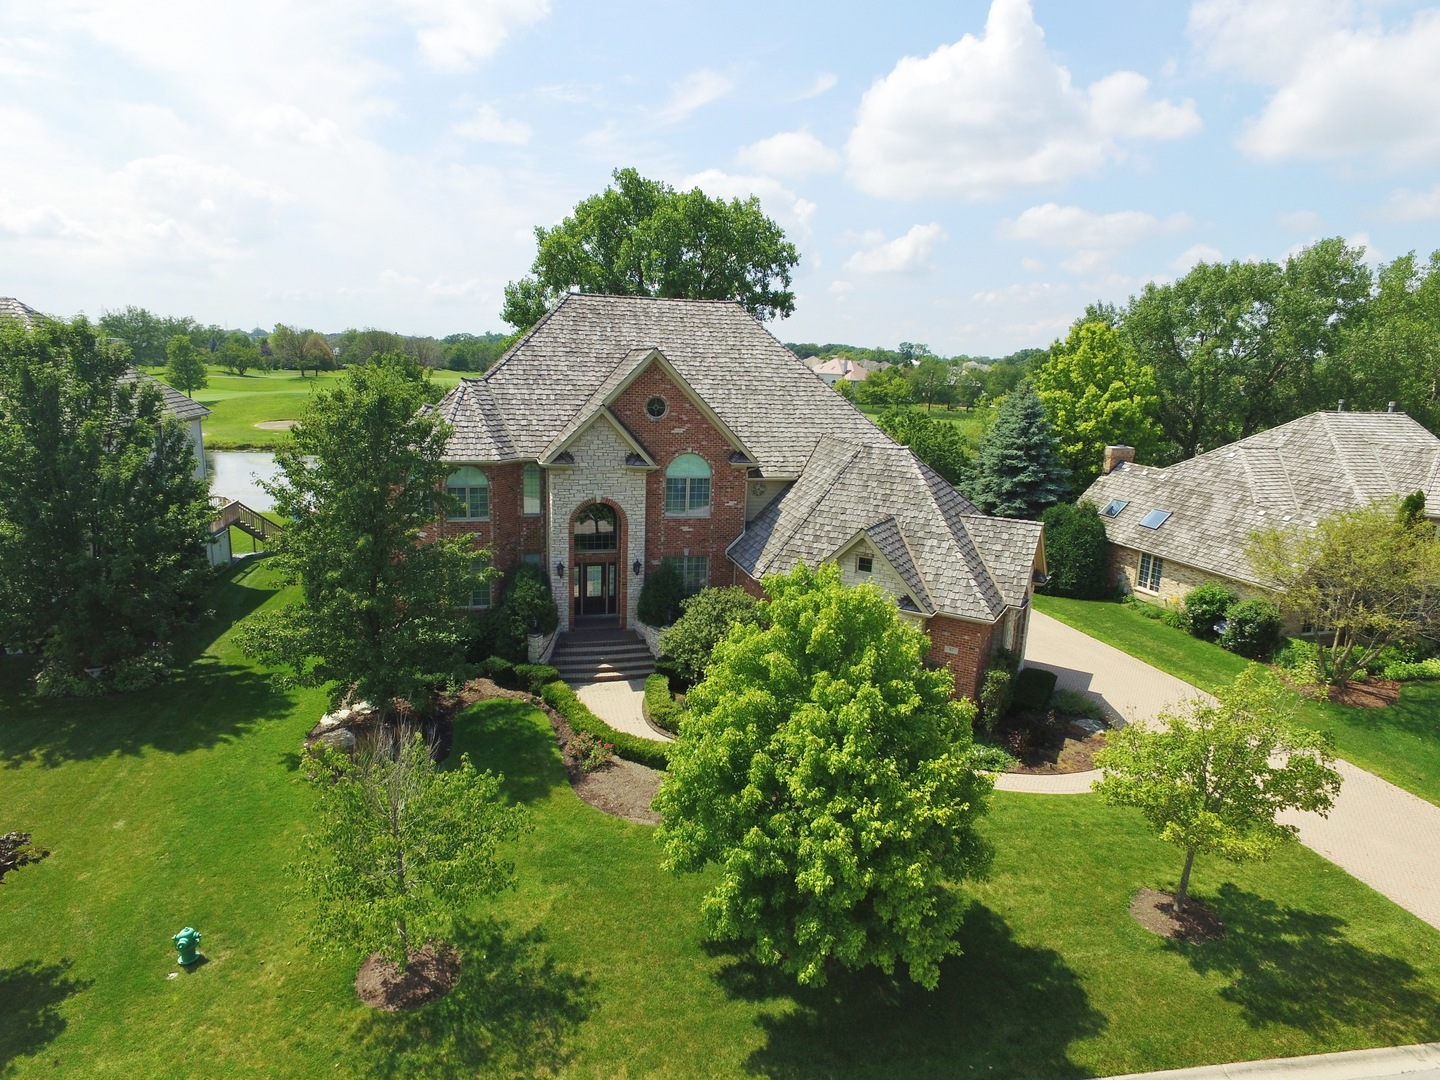 Property for sale at 87 Ruffled Feathers Drive, LEMONT,  Il 60439